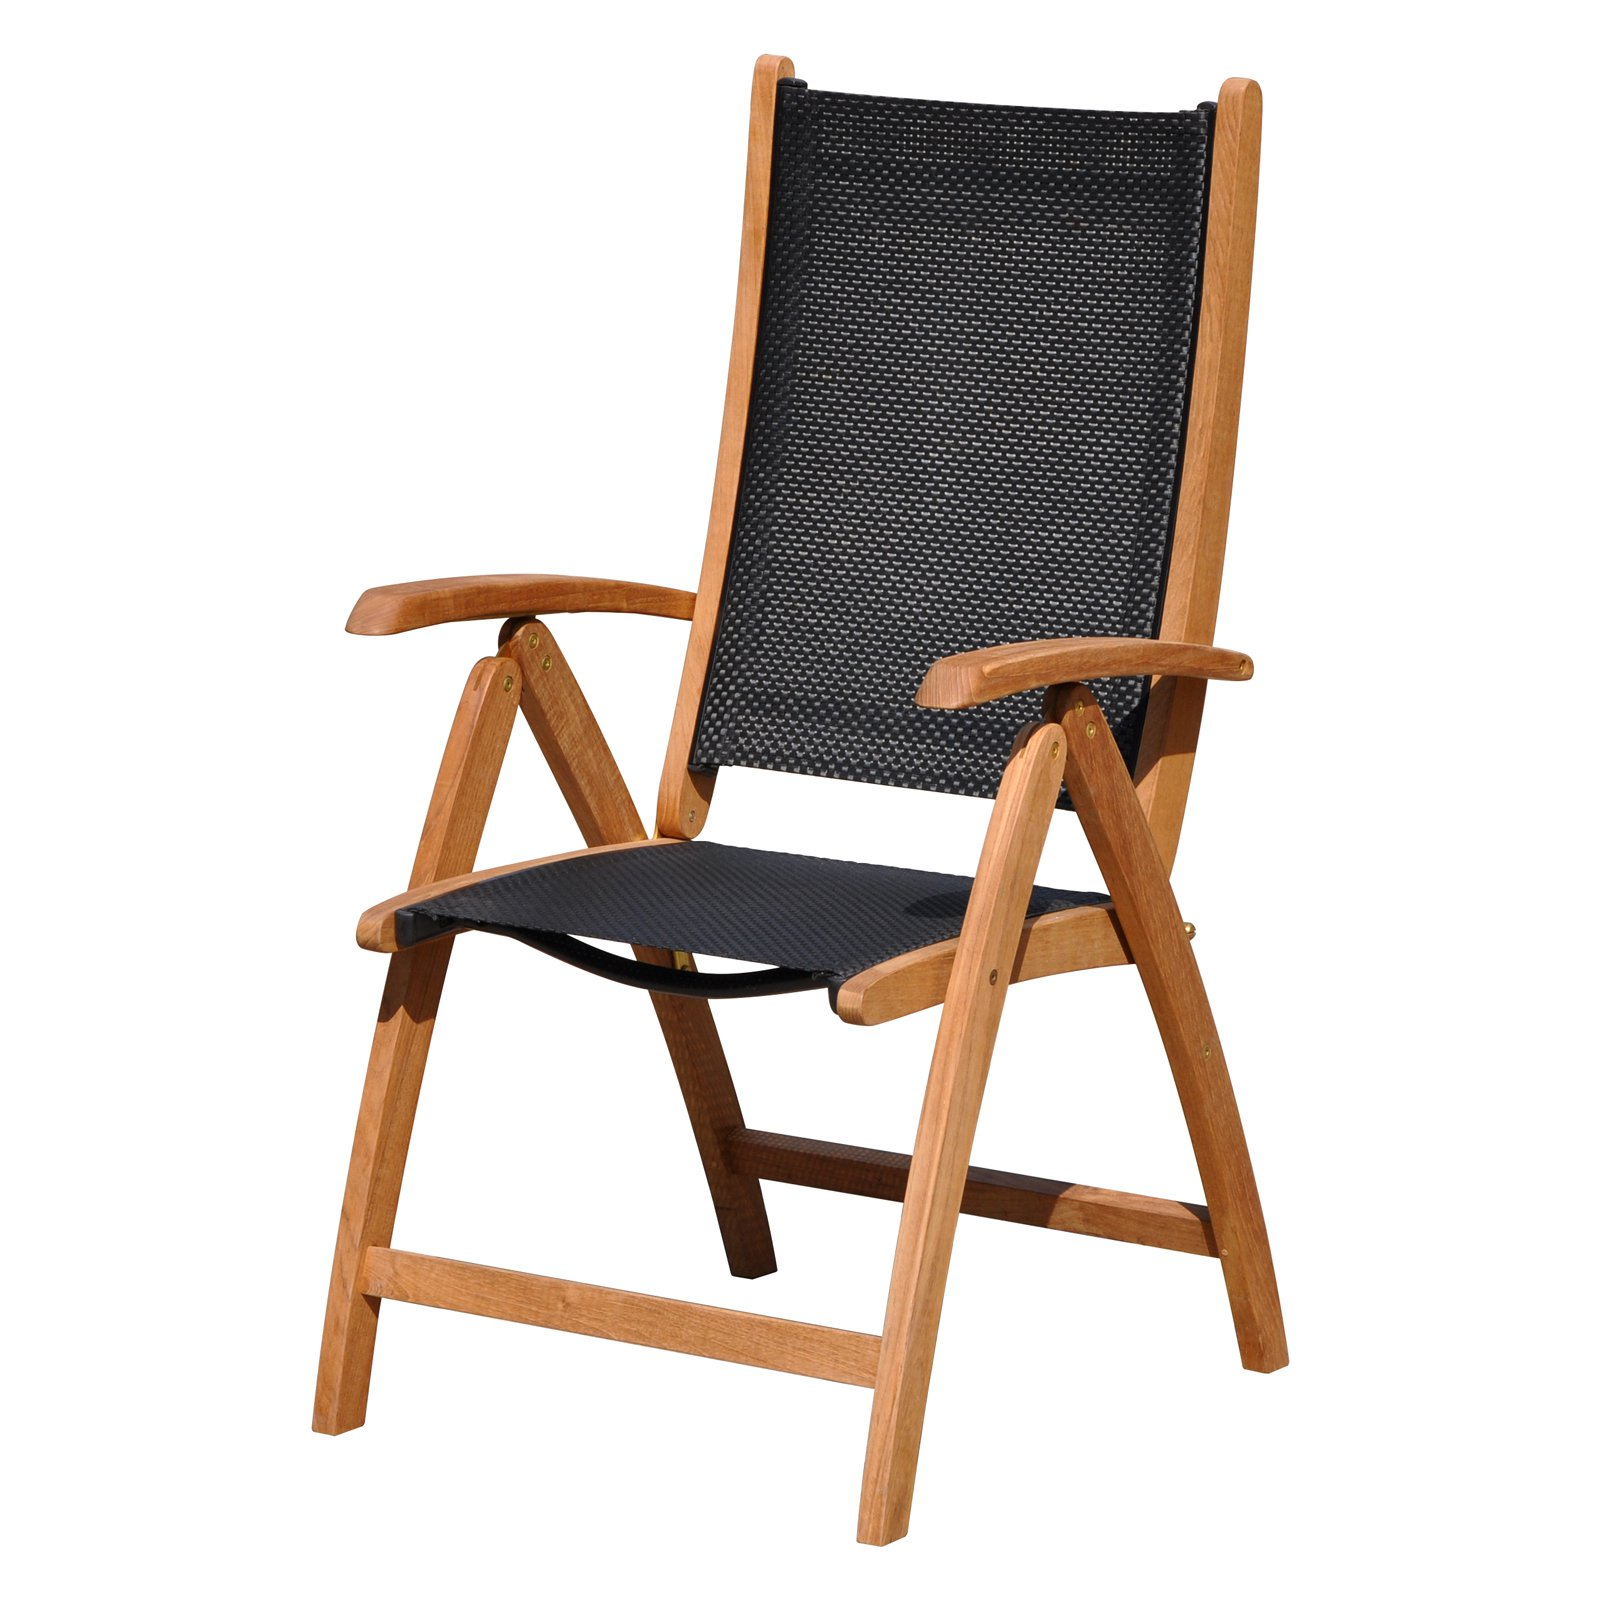 Courtyard Casual Natural Finish Burma Teak and Sling Outdoor Chair by Courtyard Casual